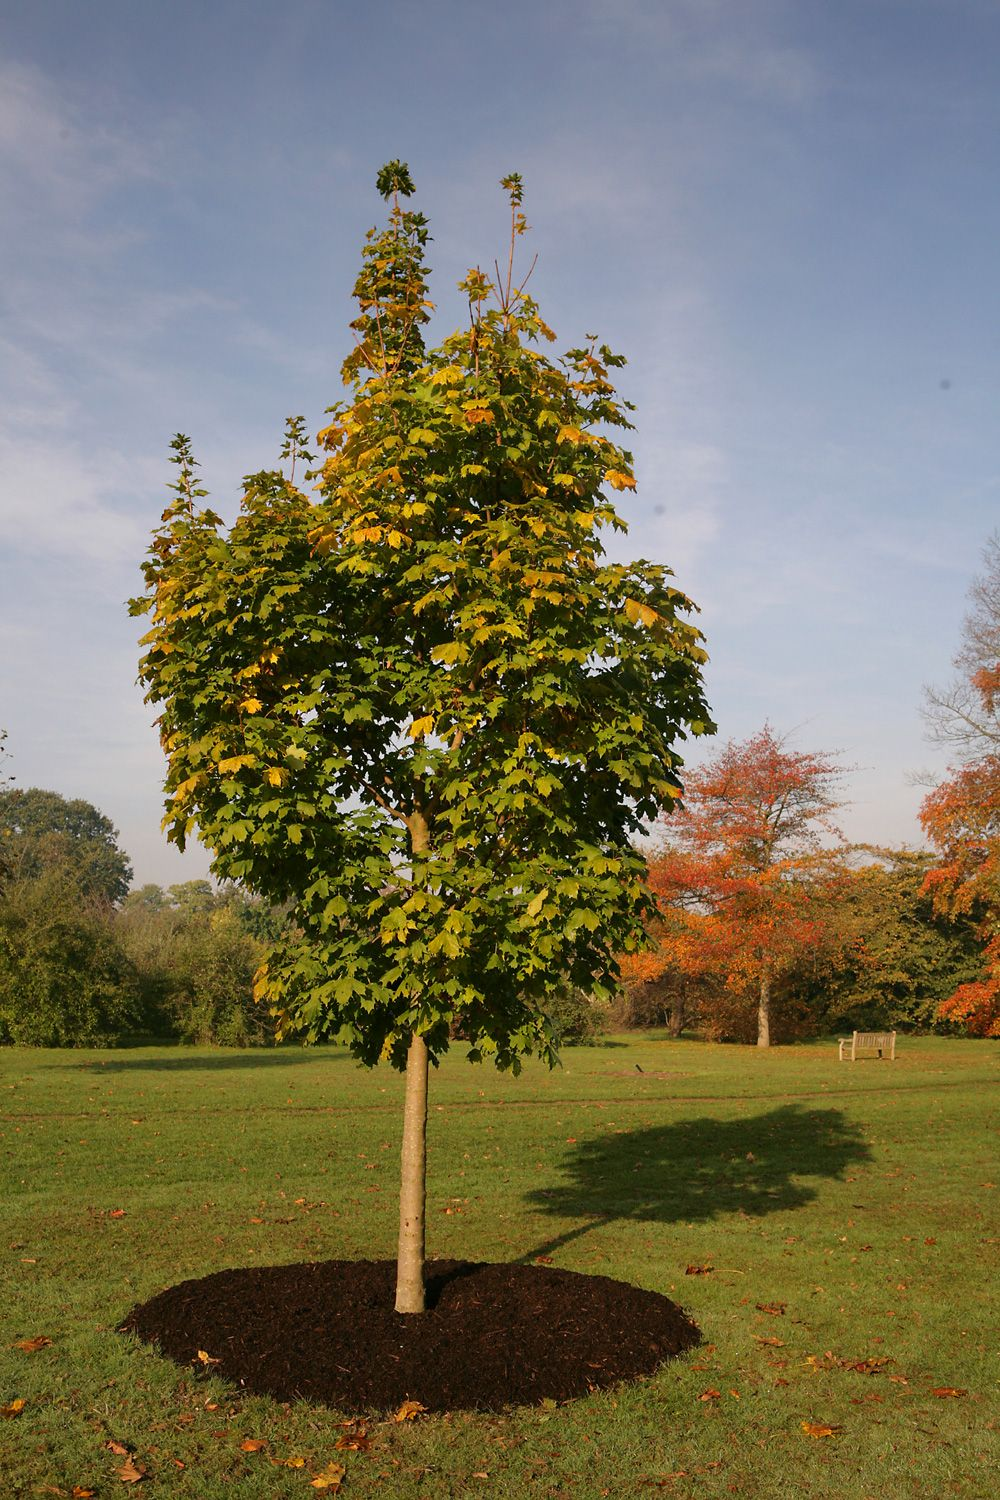 Acer platanoides cleveland 15 20 m acer platanoides - Arce platanoide ...